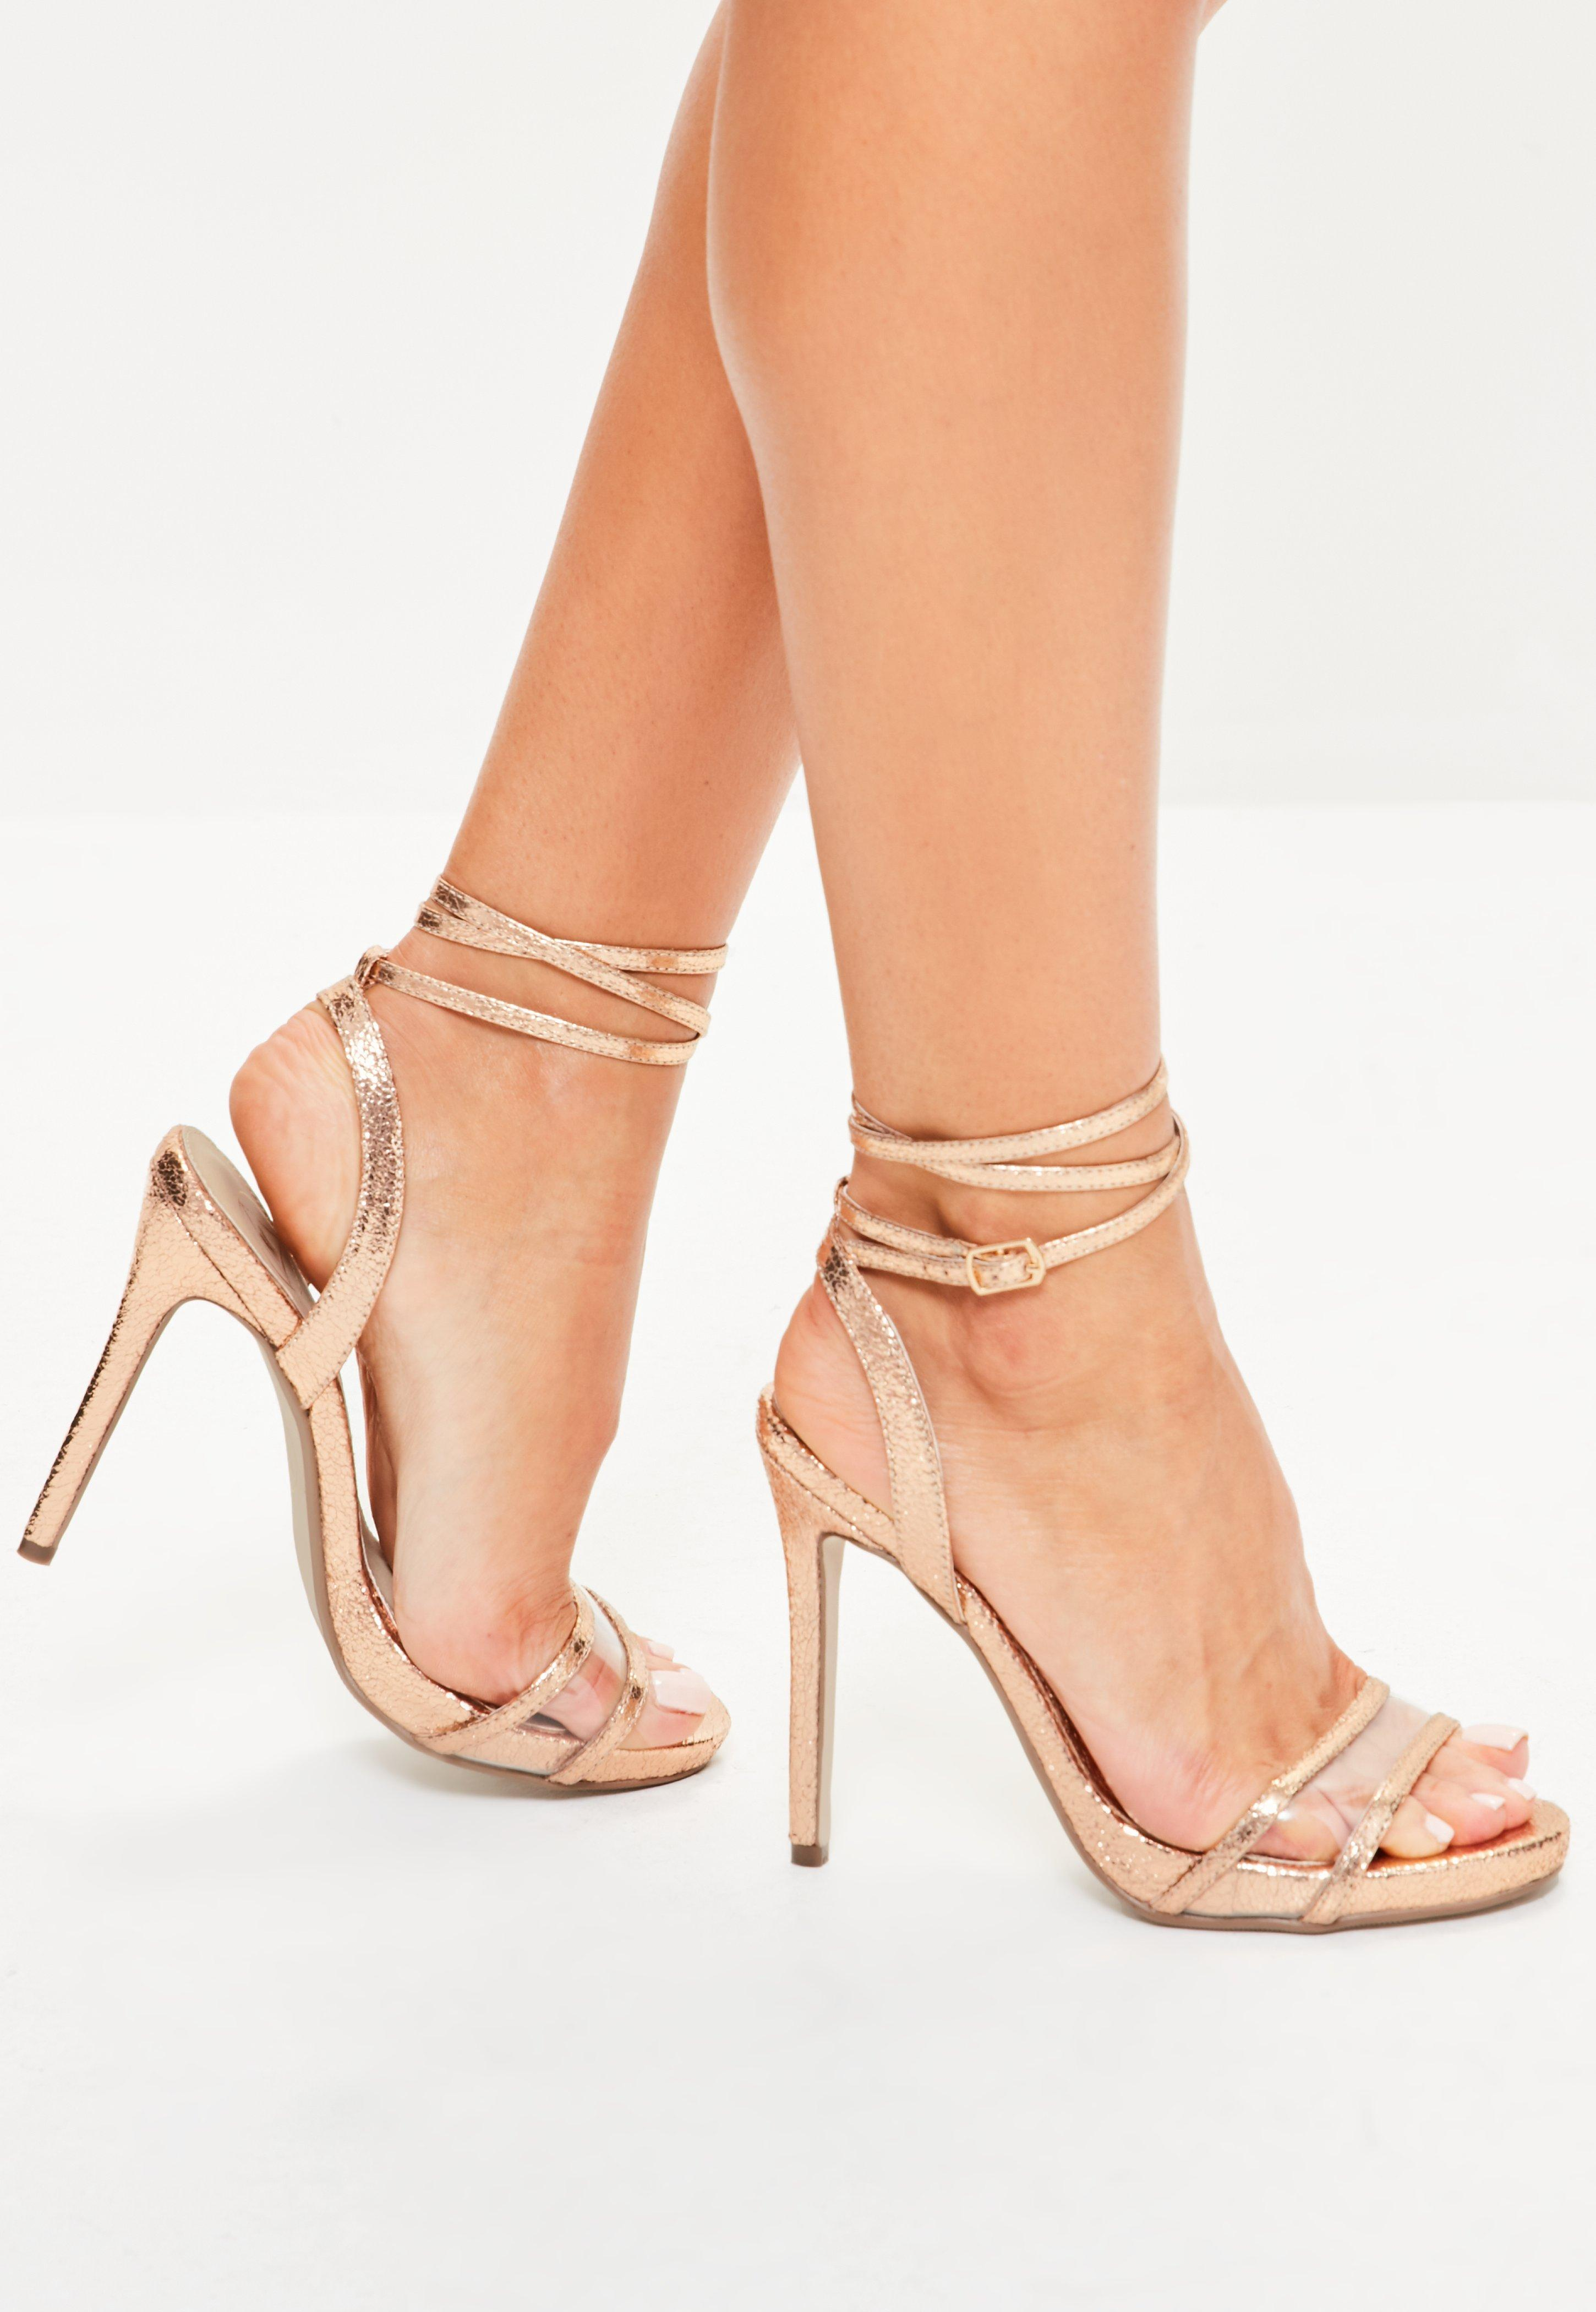 Missguided. Women's Rose Gold Perspex Vamp Ankle Tie Sandals